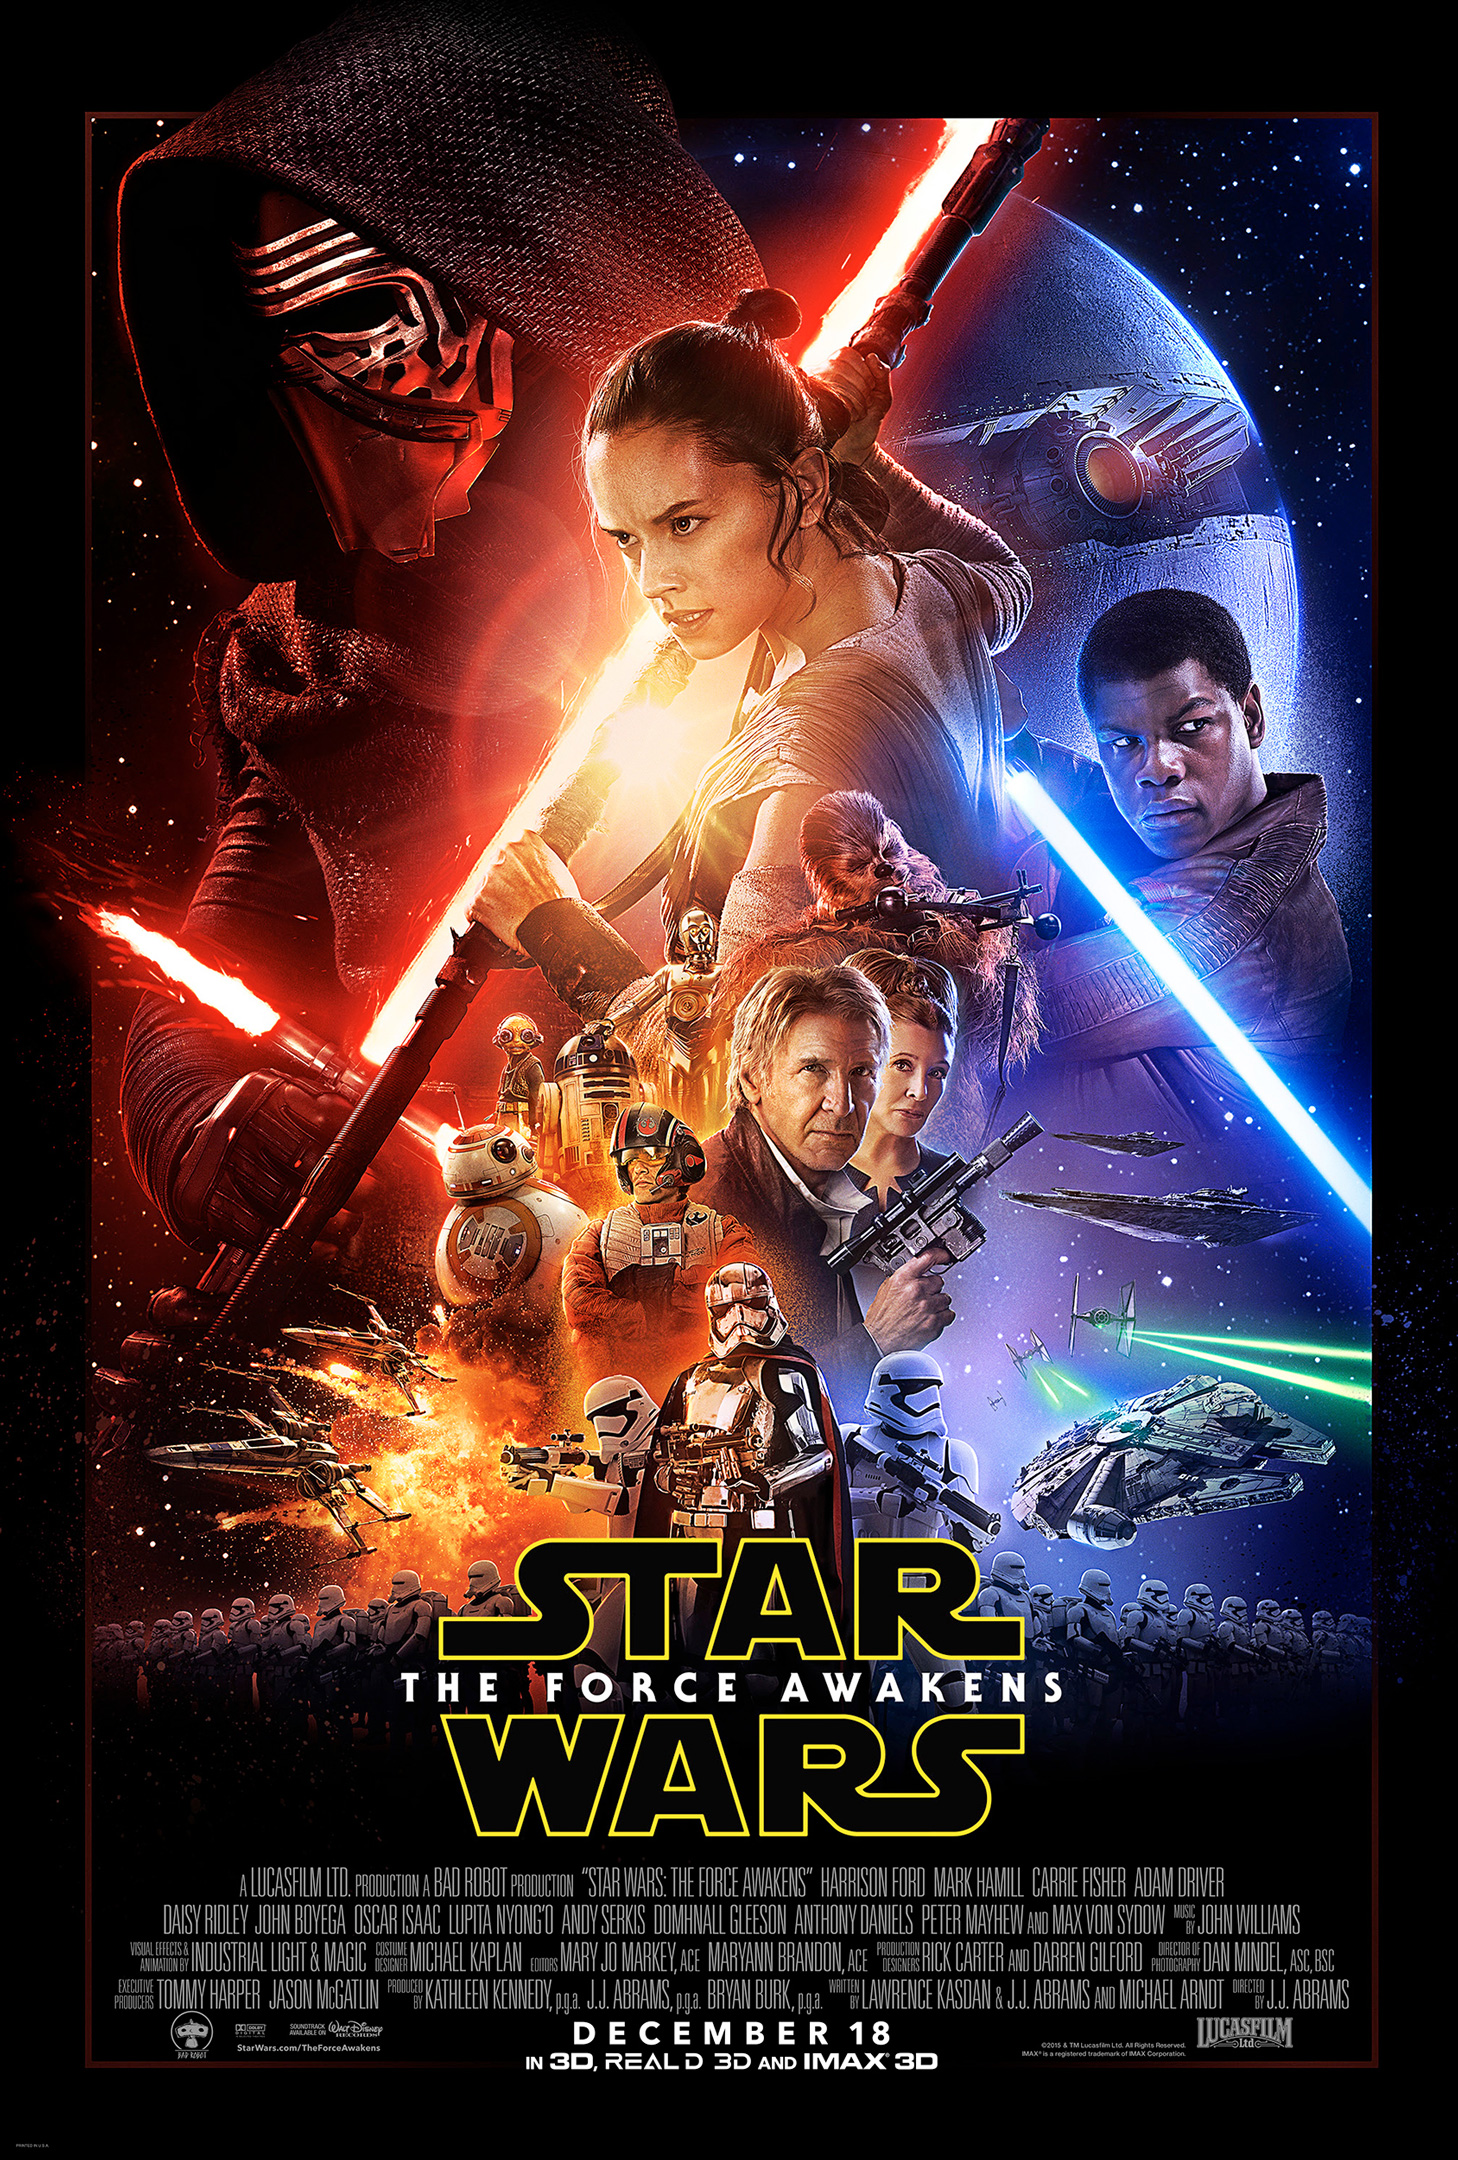 Star Wars posters it wasnt actually the official movie poster for 1458x2160